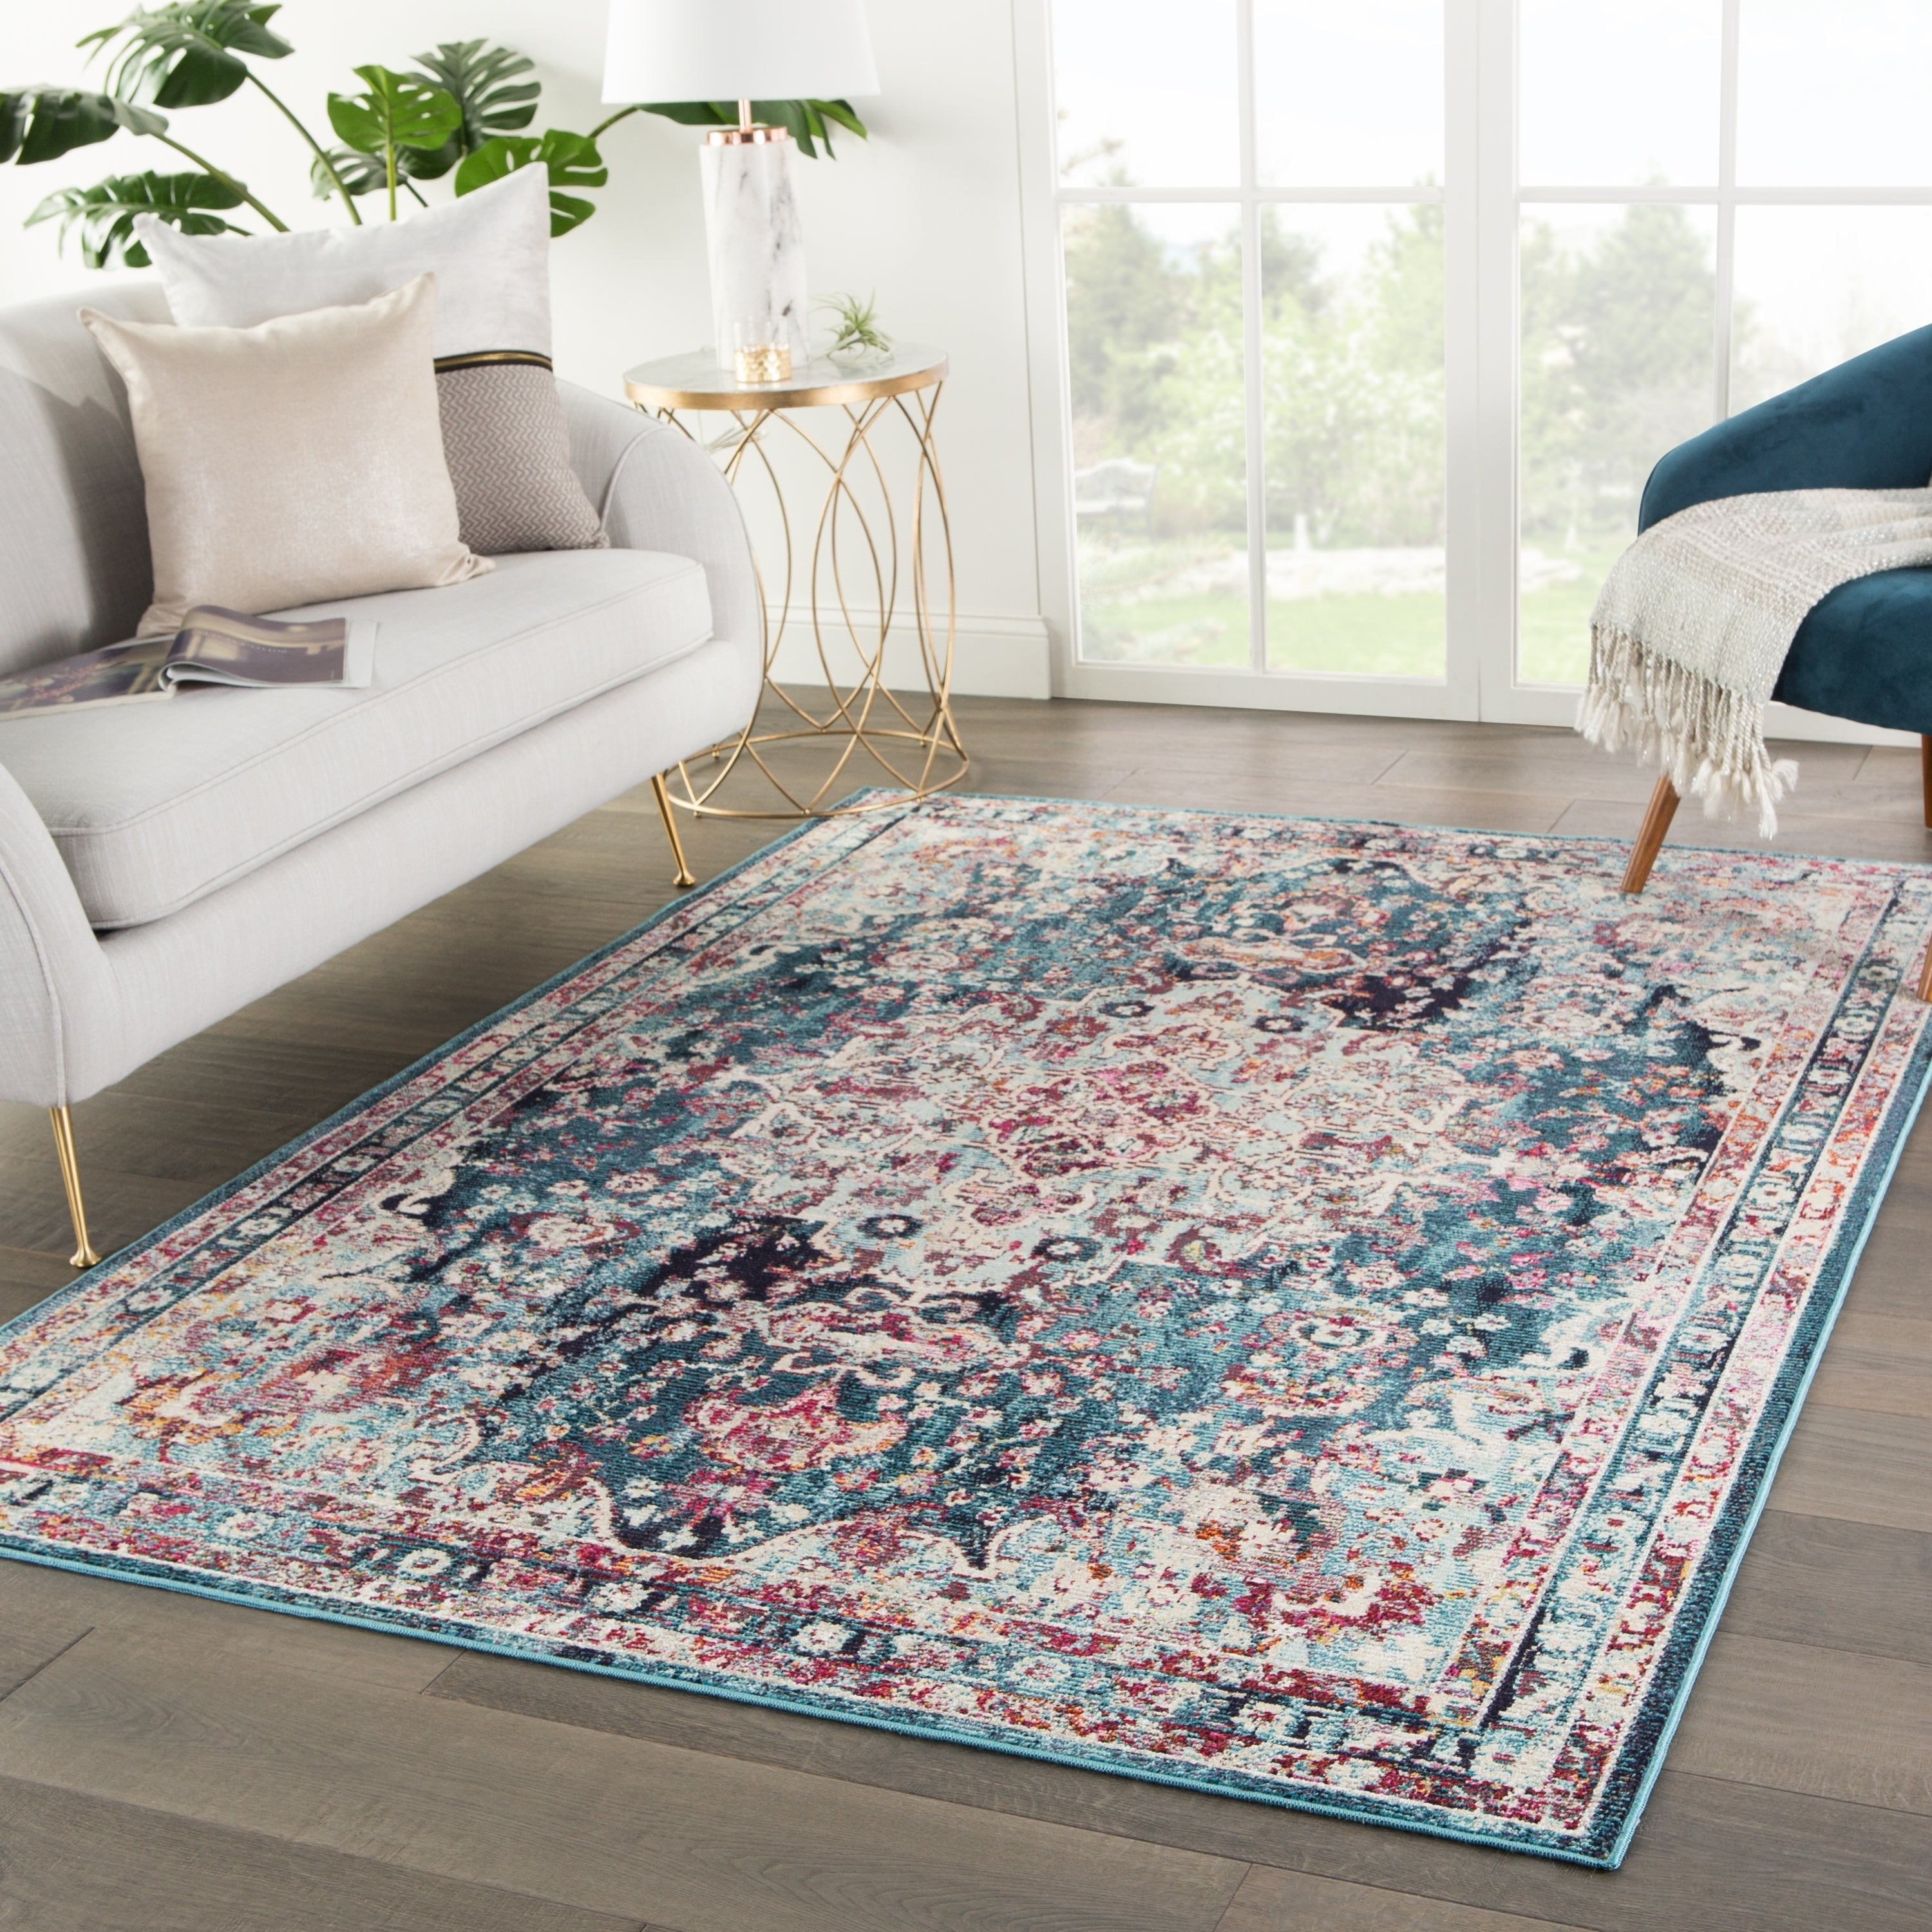 Shop The Curated Nomad Willard Medallion Teal Area Rug 4 X 58